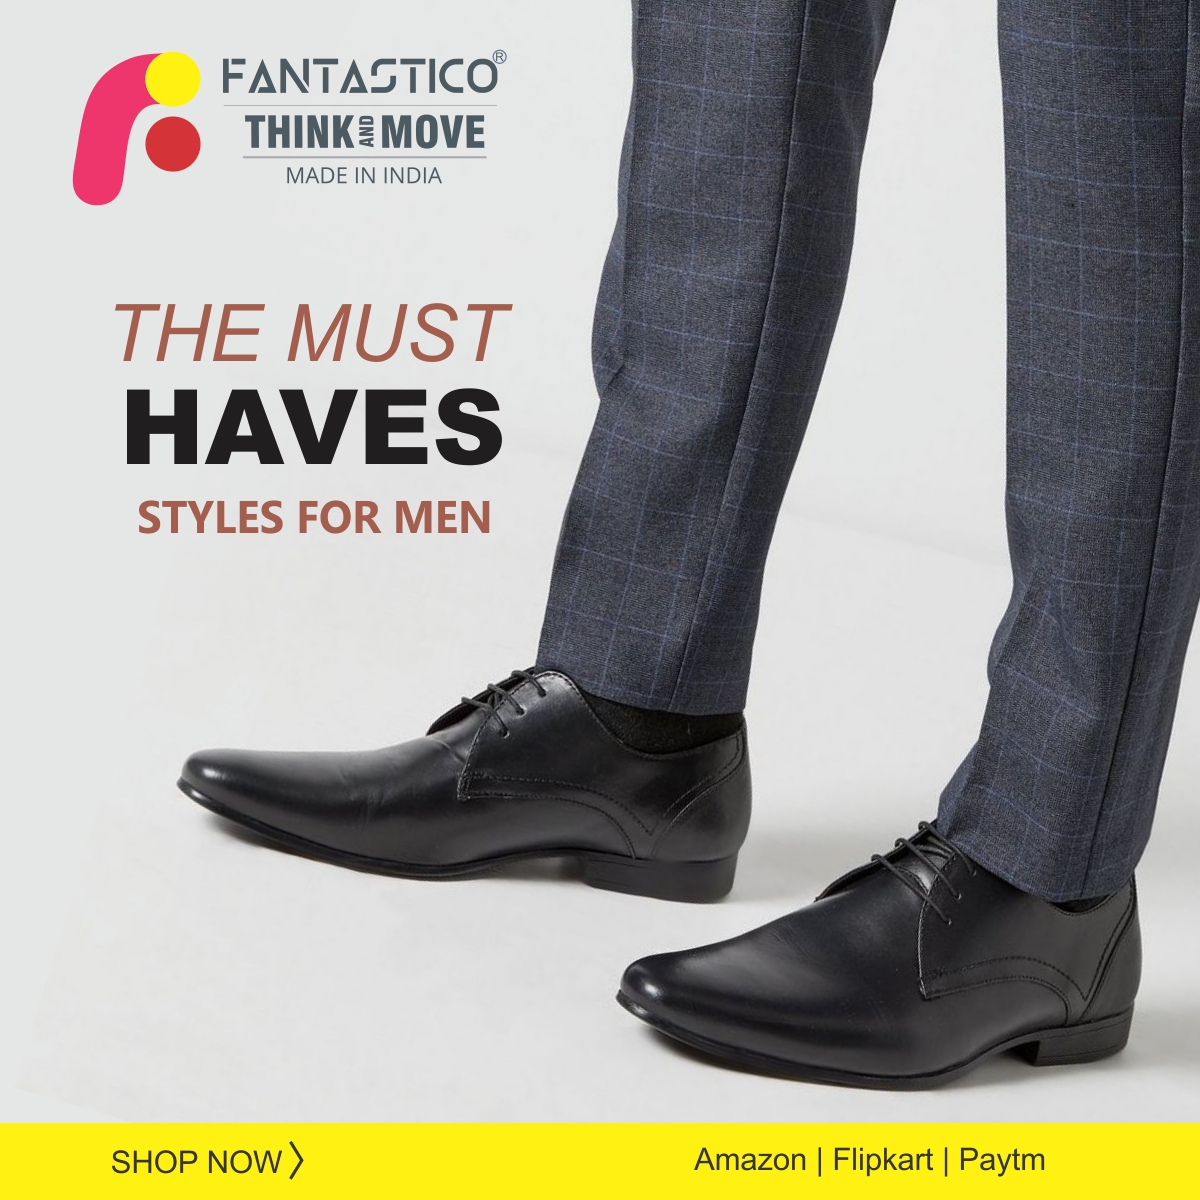 Fantastico magical collection of apparel, footwear and accessories has something for everybodyGreat Brand. Smart Prices.#Fantastico #Shoes #designs #Brand #Janmashtami #FantasticoShoes #Handcrafted #shoes #MenShoes #MenFootwear #MenFormalShoes #MenFormal #MenDressShoes #Formal